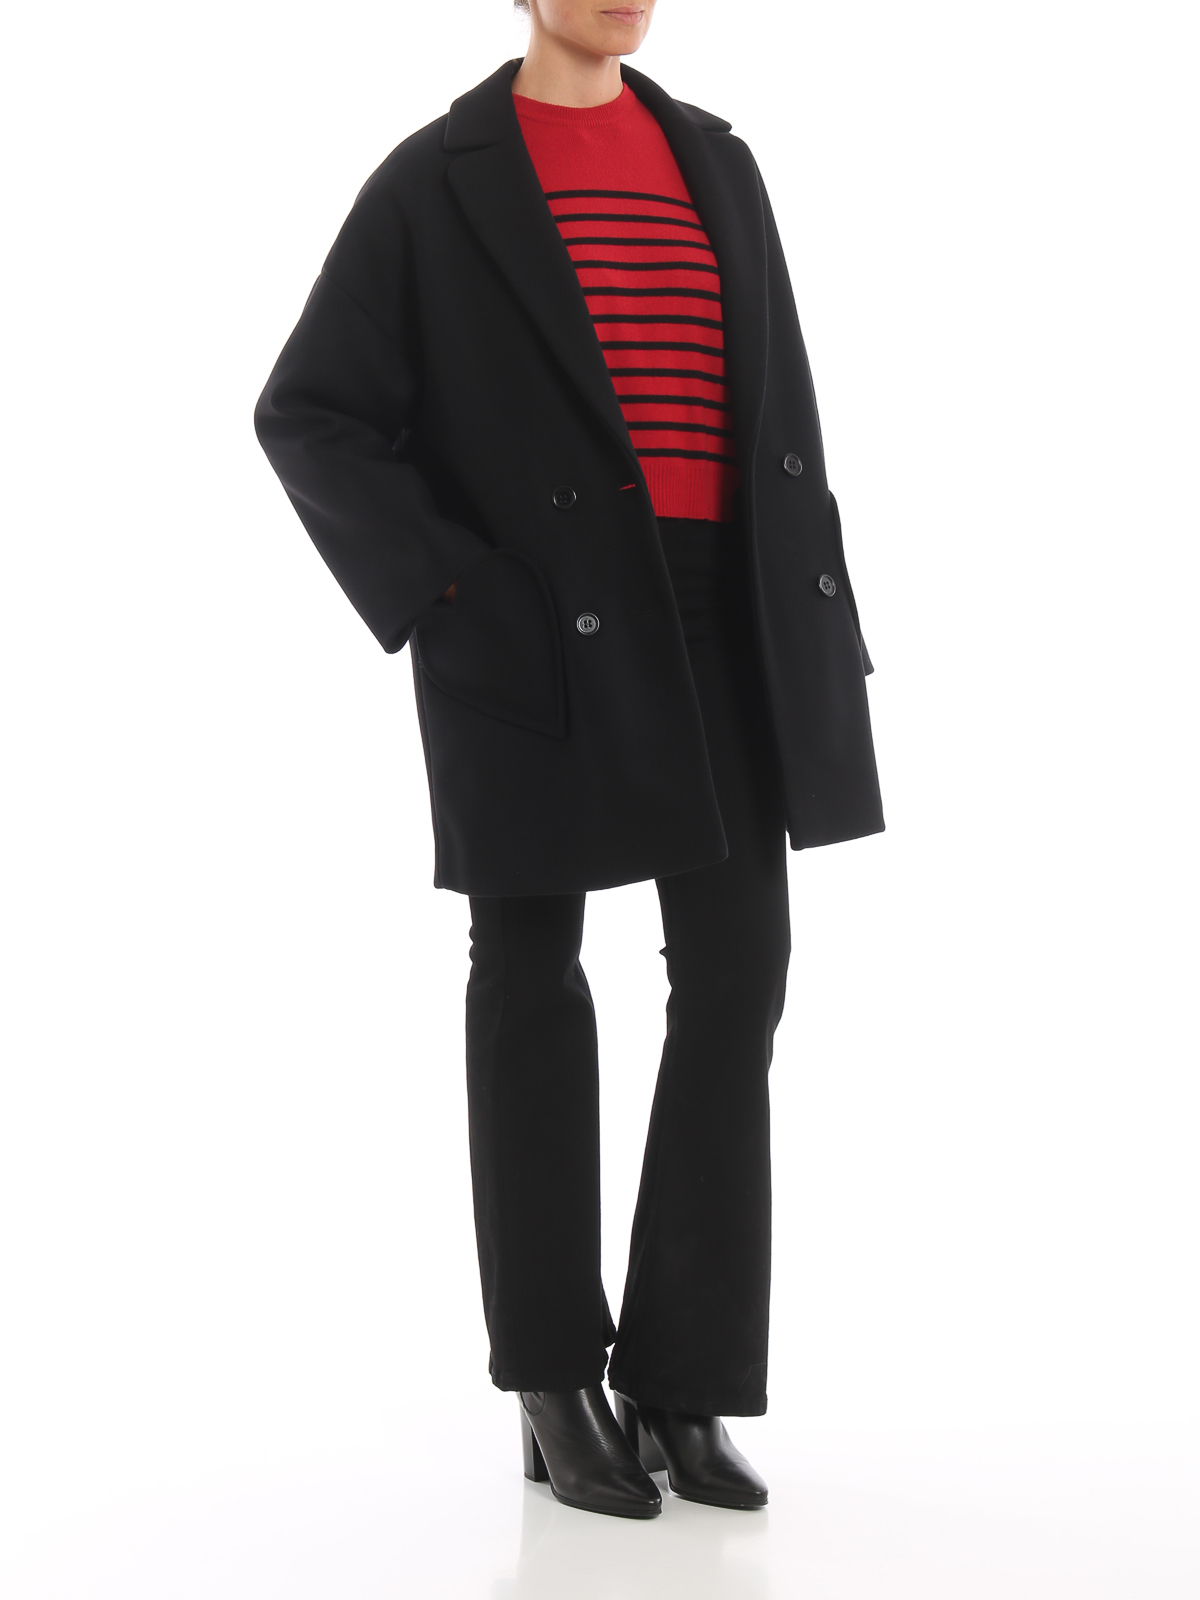 online store 090af 90cd3 Valentino Red - Cappotto oversize nero in lana e cashmere ...